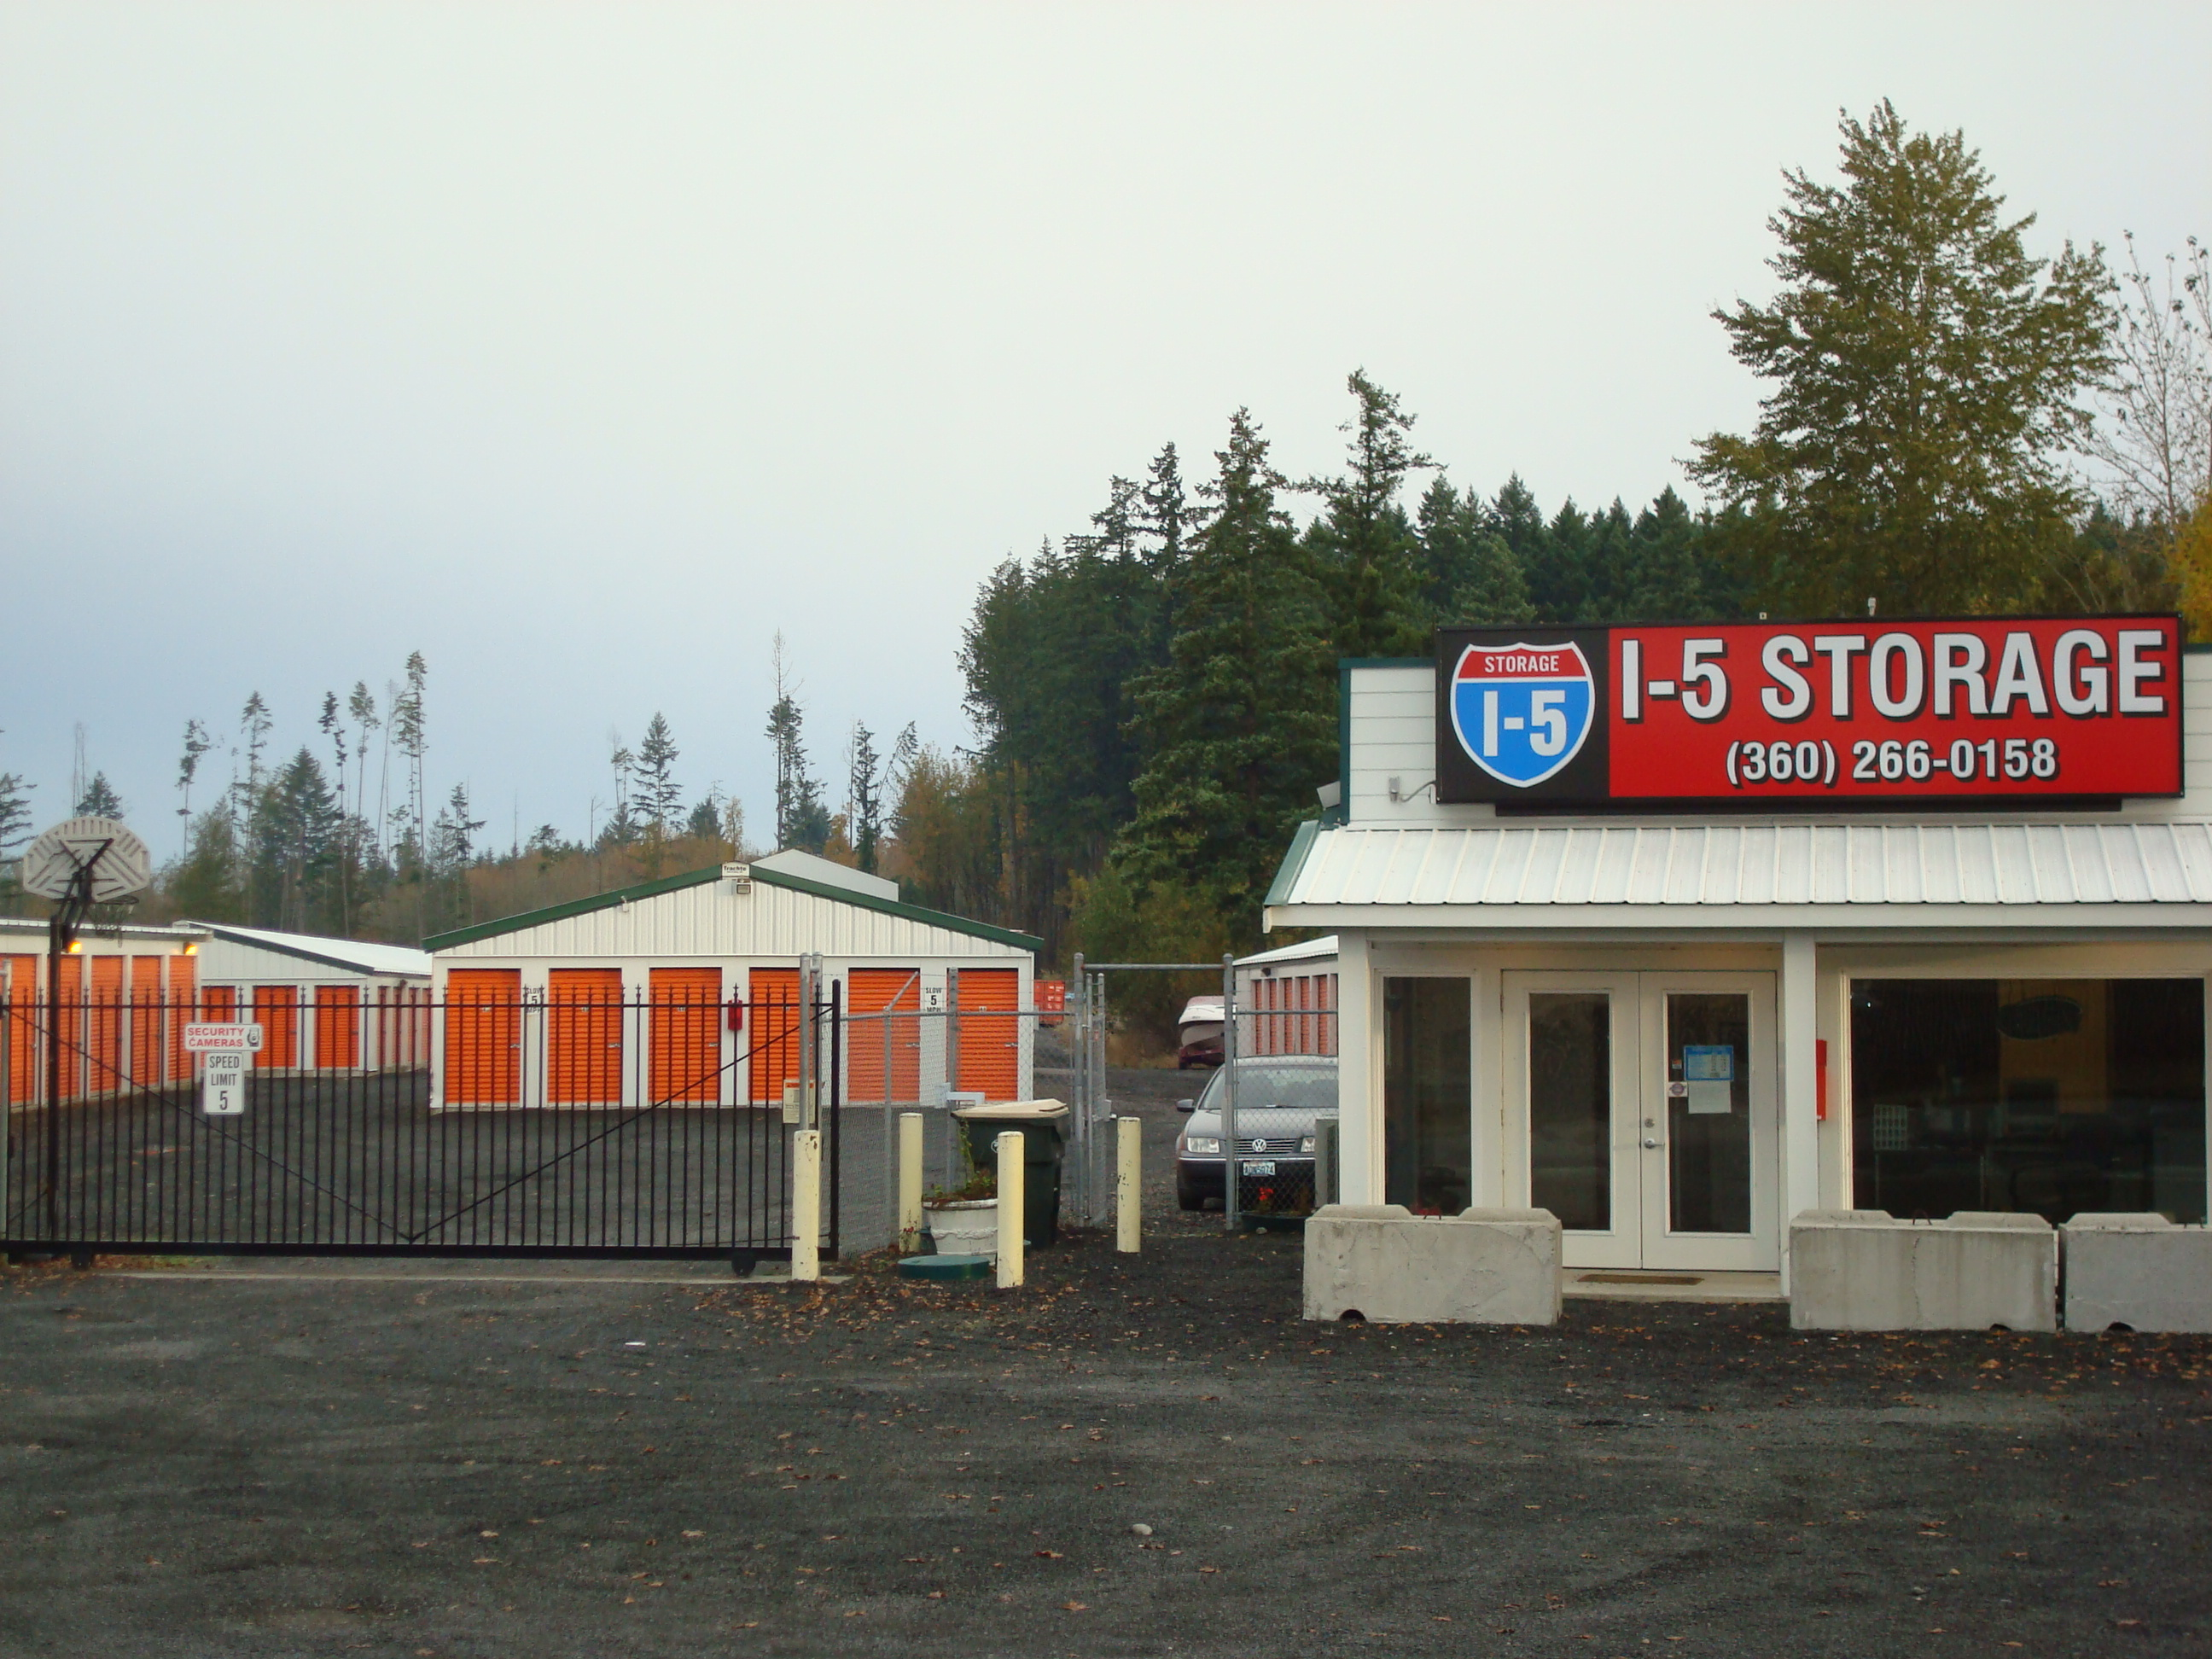 Cargo Container Rental   Storage Options For Gig Harbor